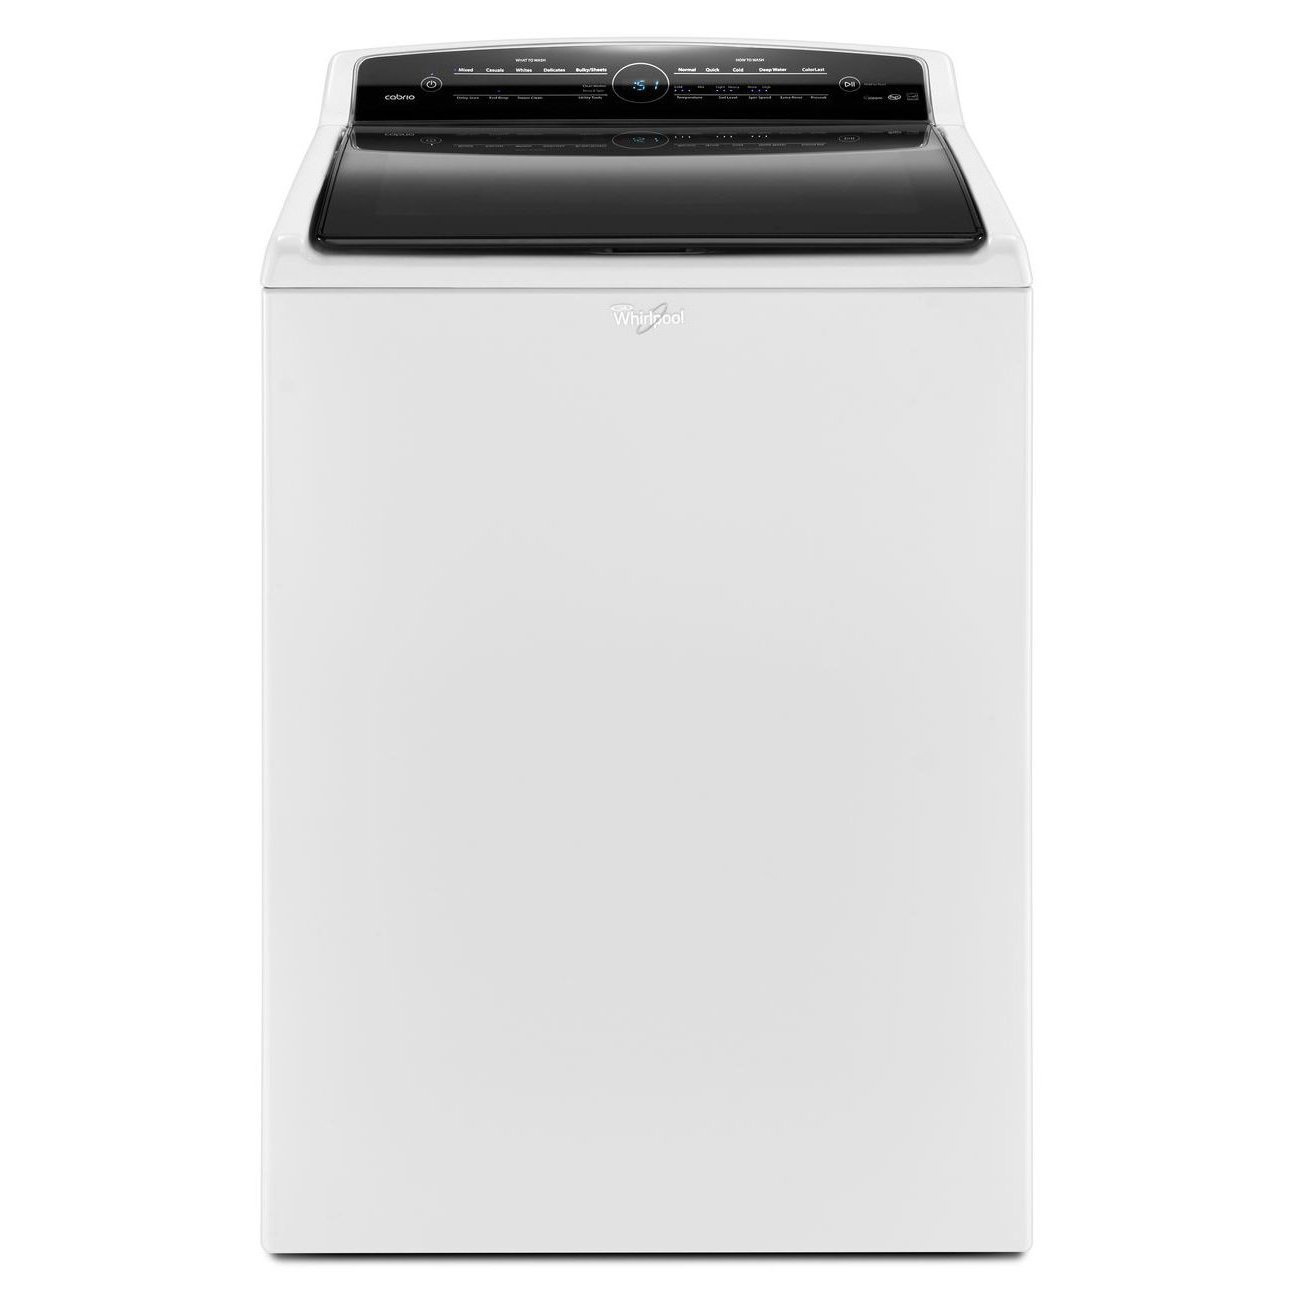 WTW7300DW Washer Problems